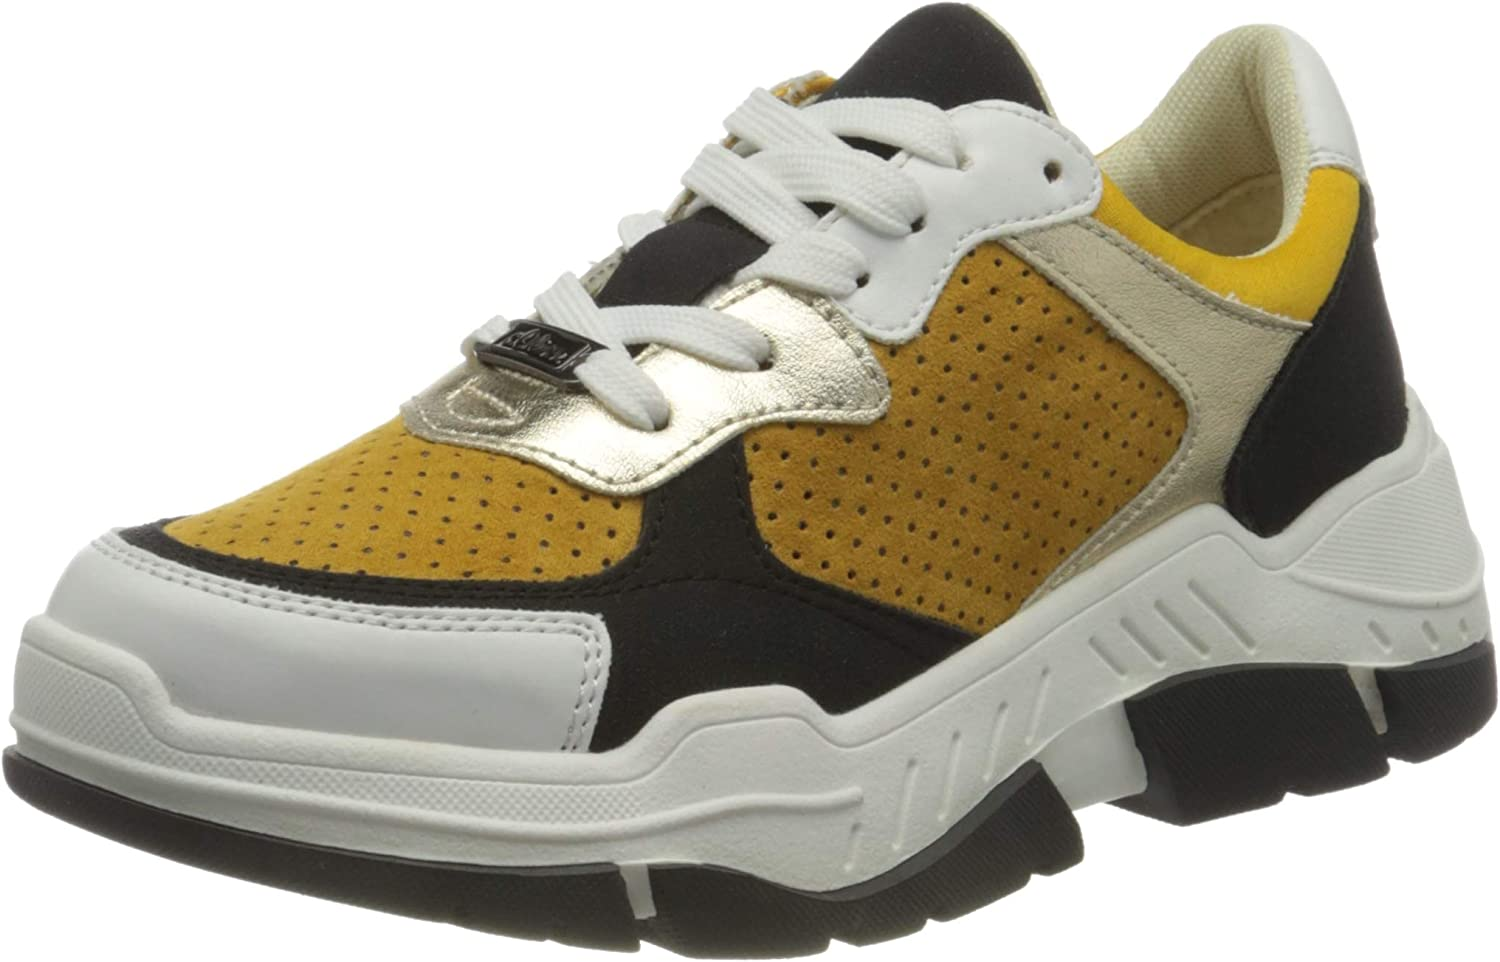 sold out s.Oliver Women's Low-Top Sneakers Easy-to-use